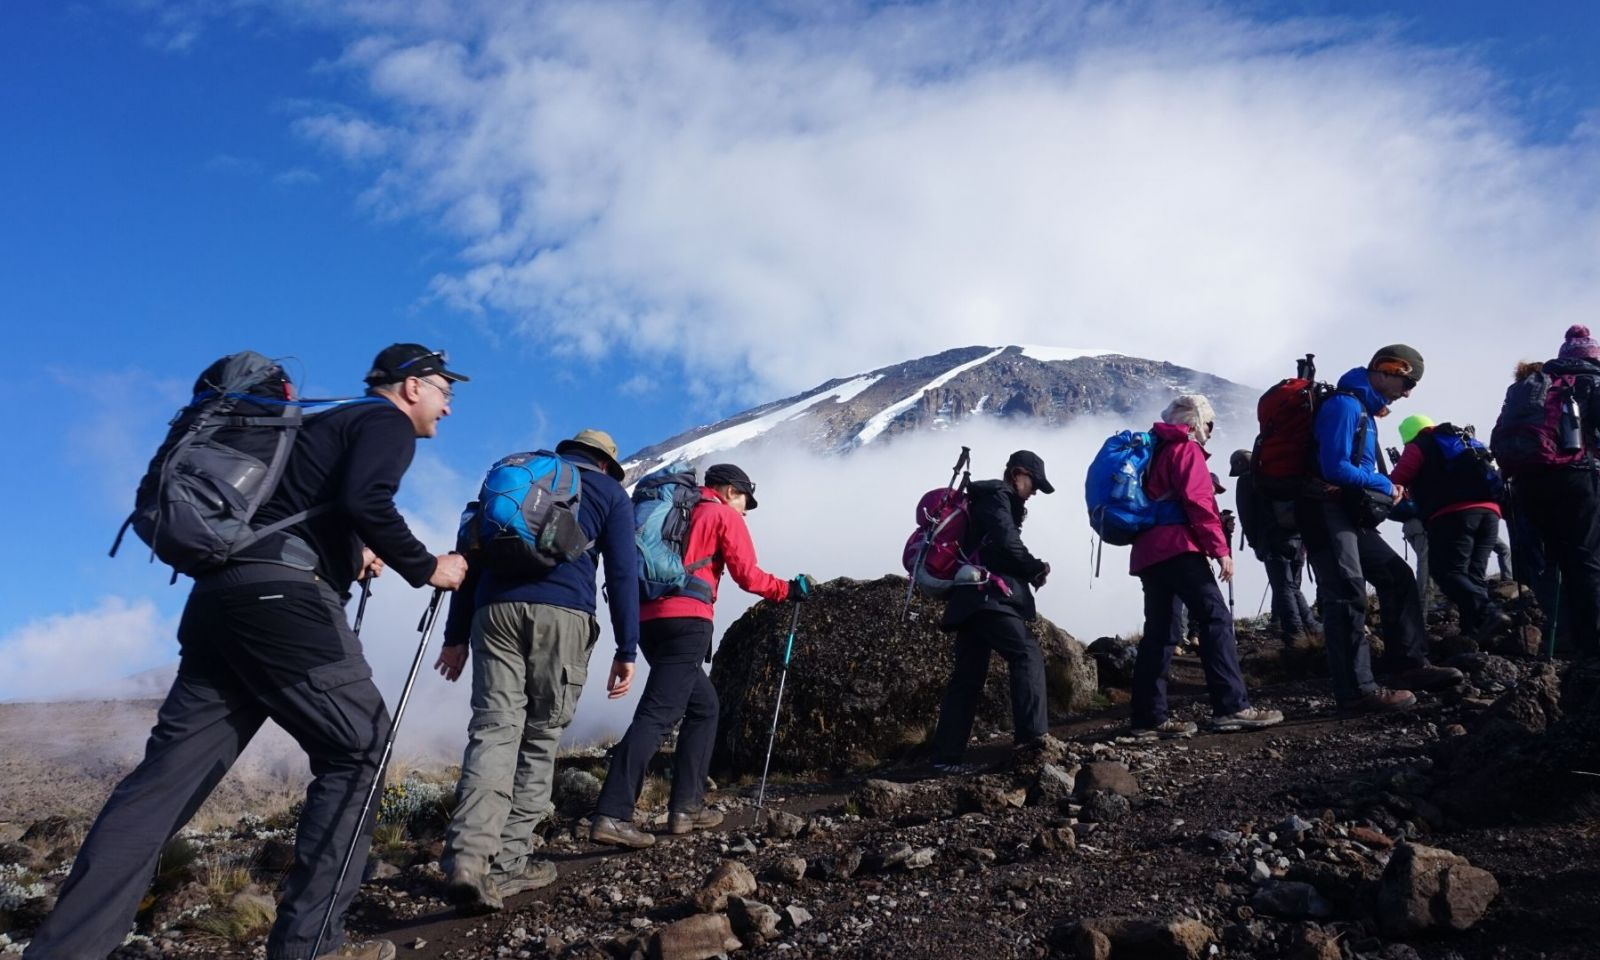 Group trekking with Kilimanjaro in the background.